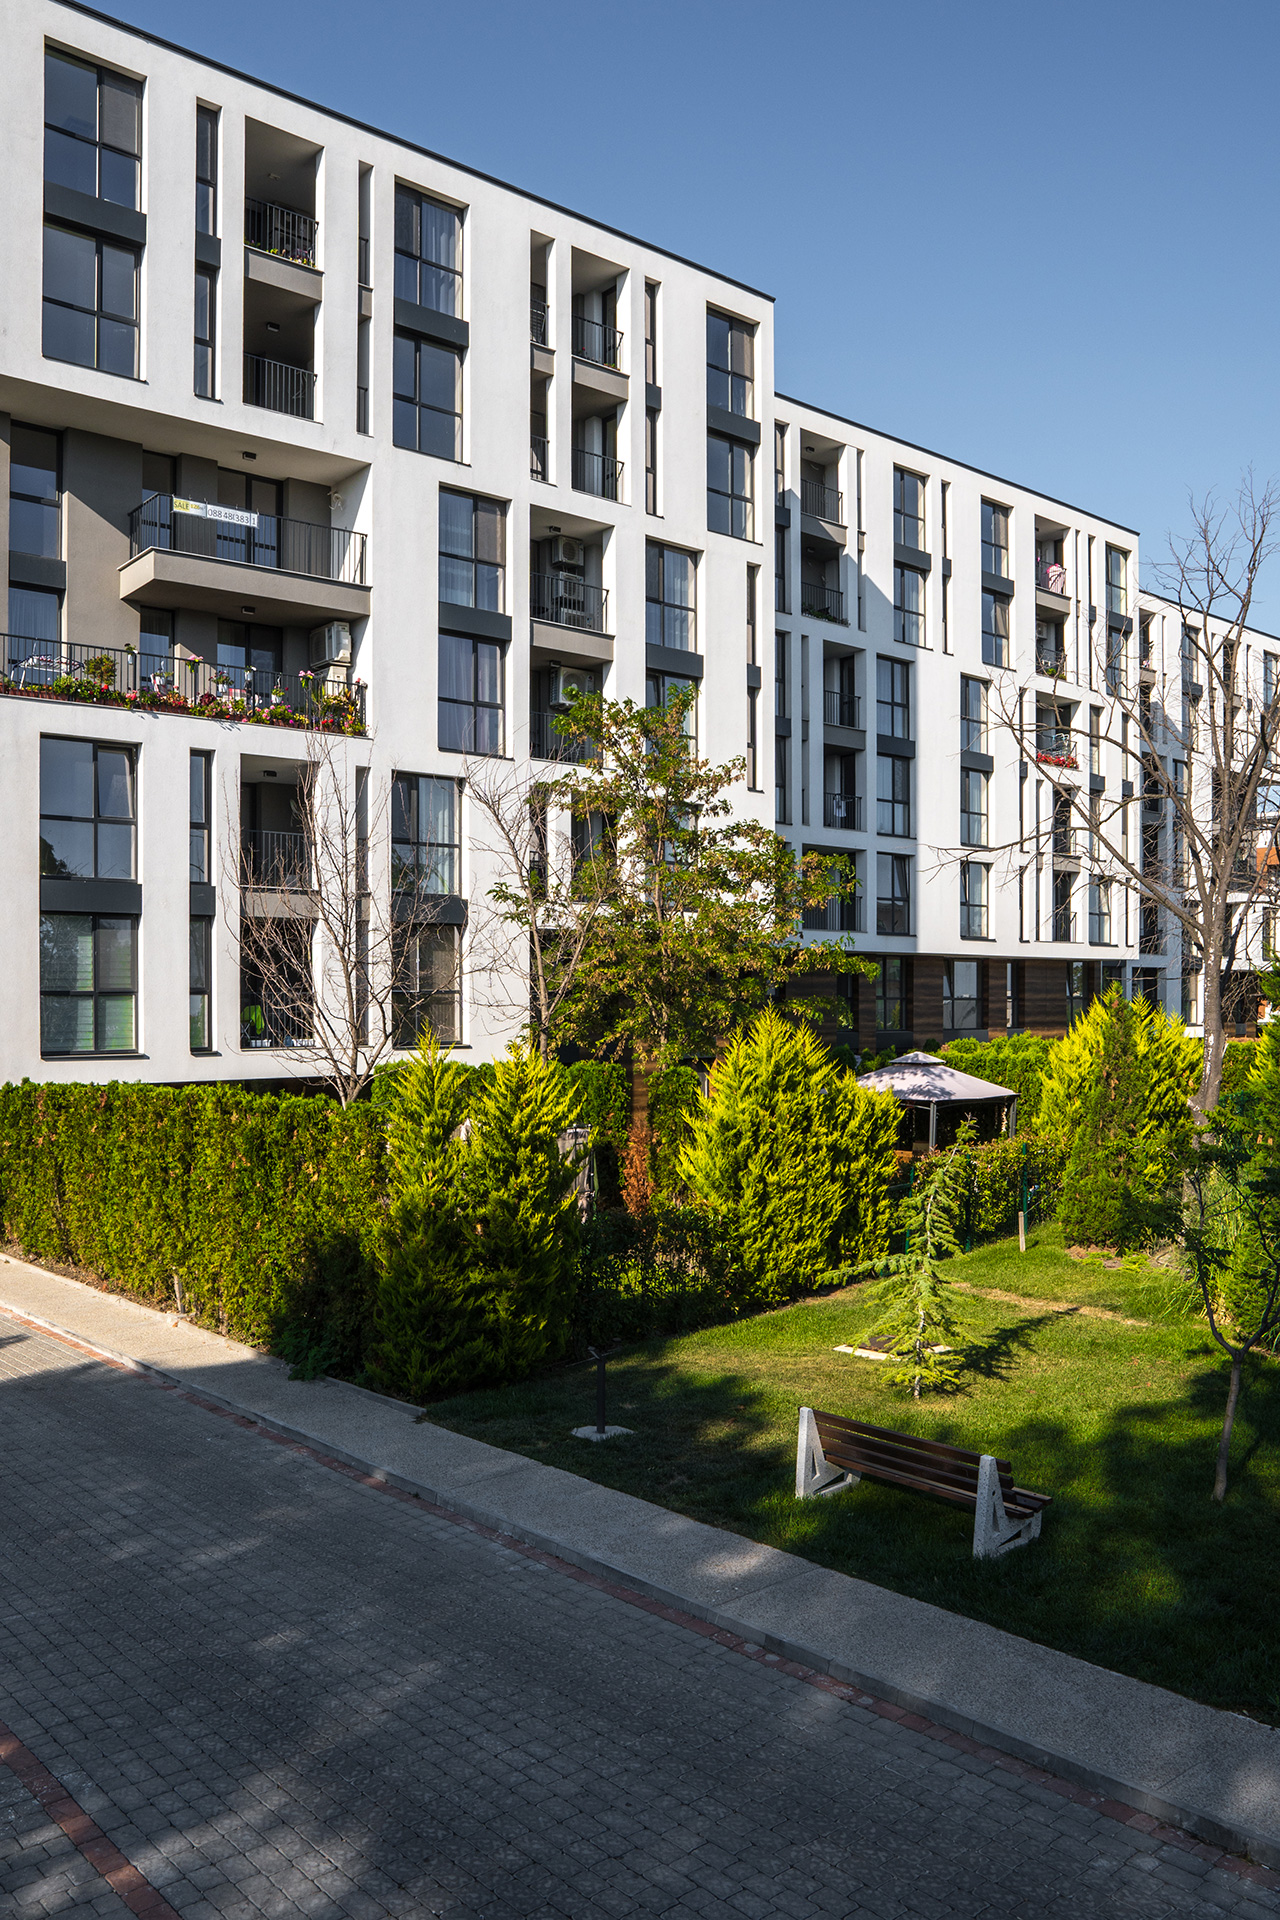 spacemode-architecture-studio-residence-park-5